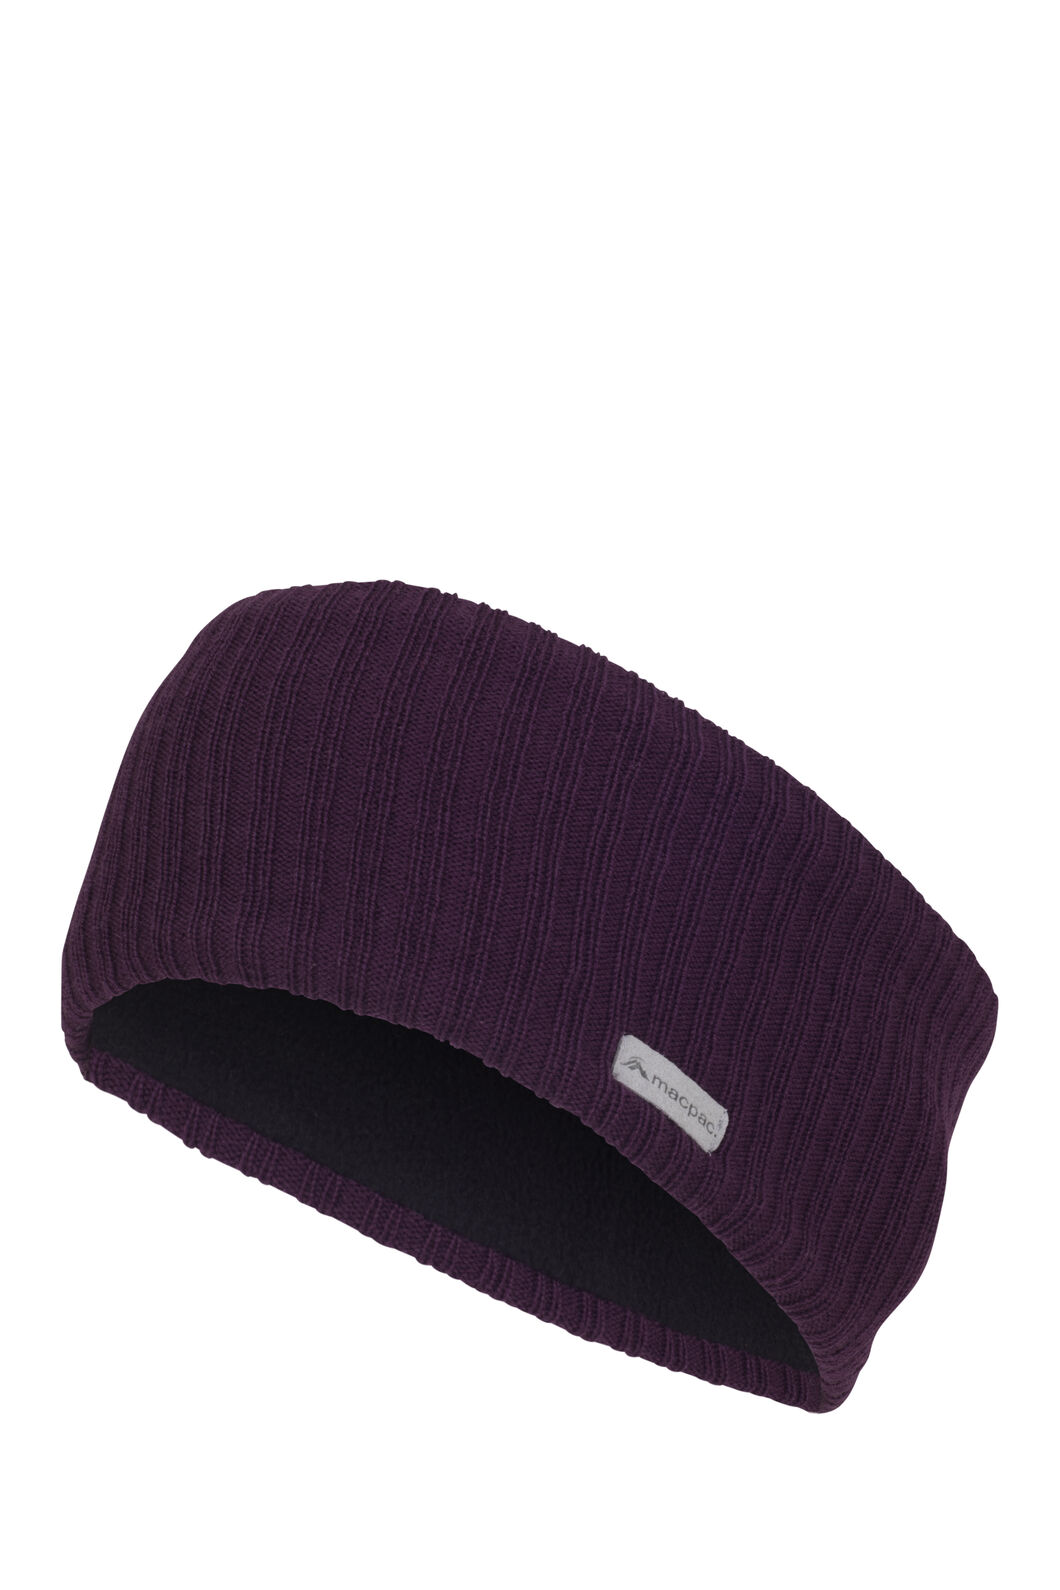 Macpac Merino Headband, Potent Purple, hi-res